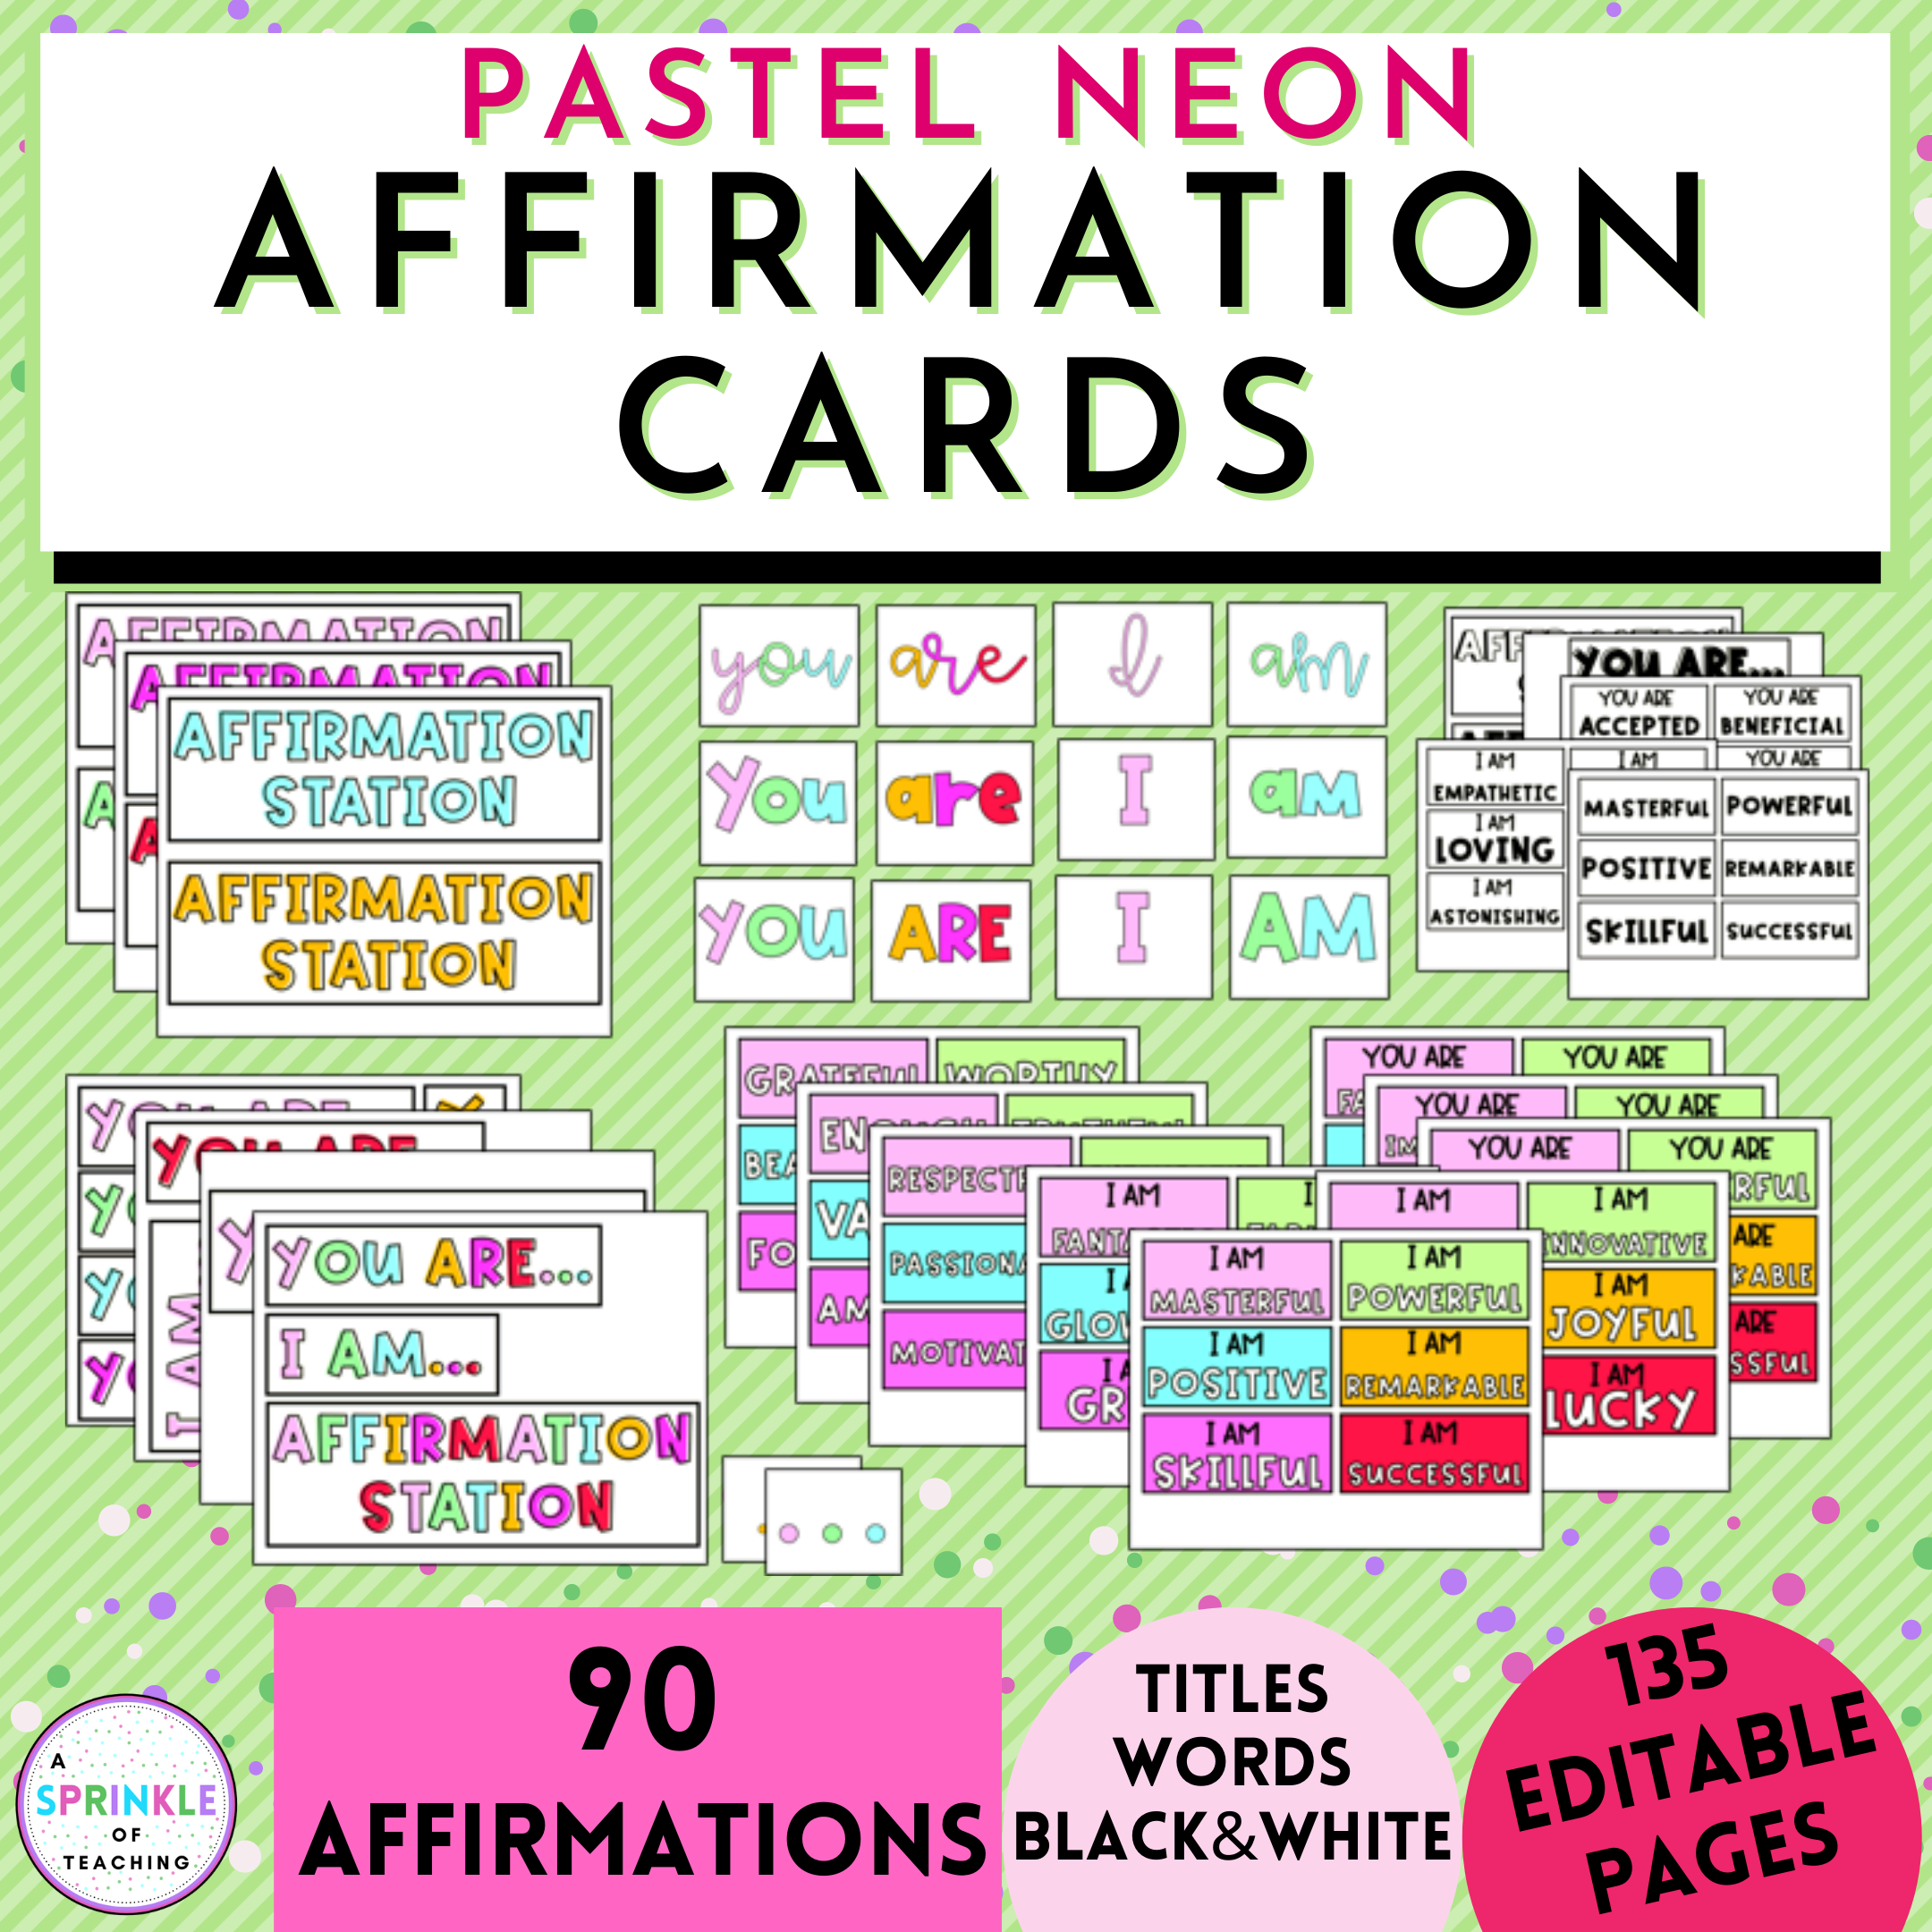 Mirror Positive Affirmation Cards